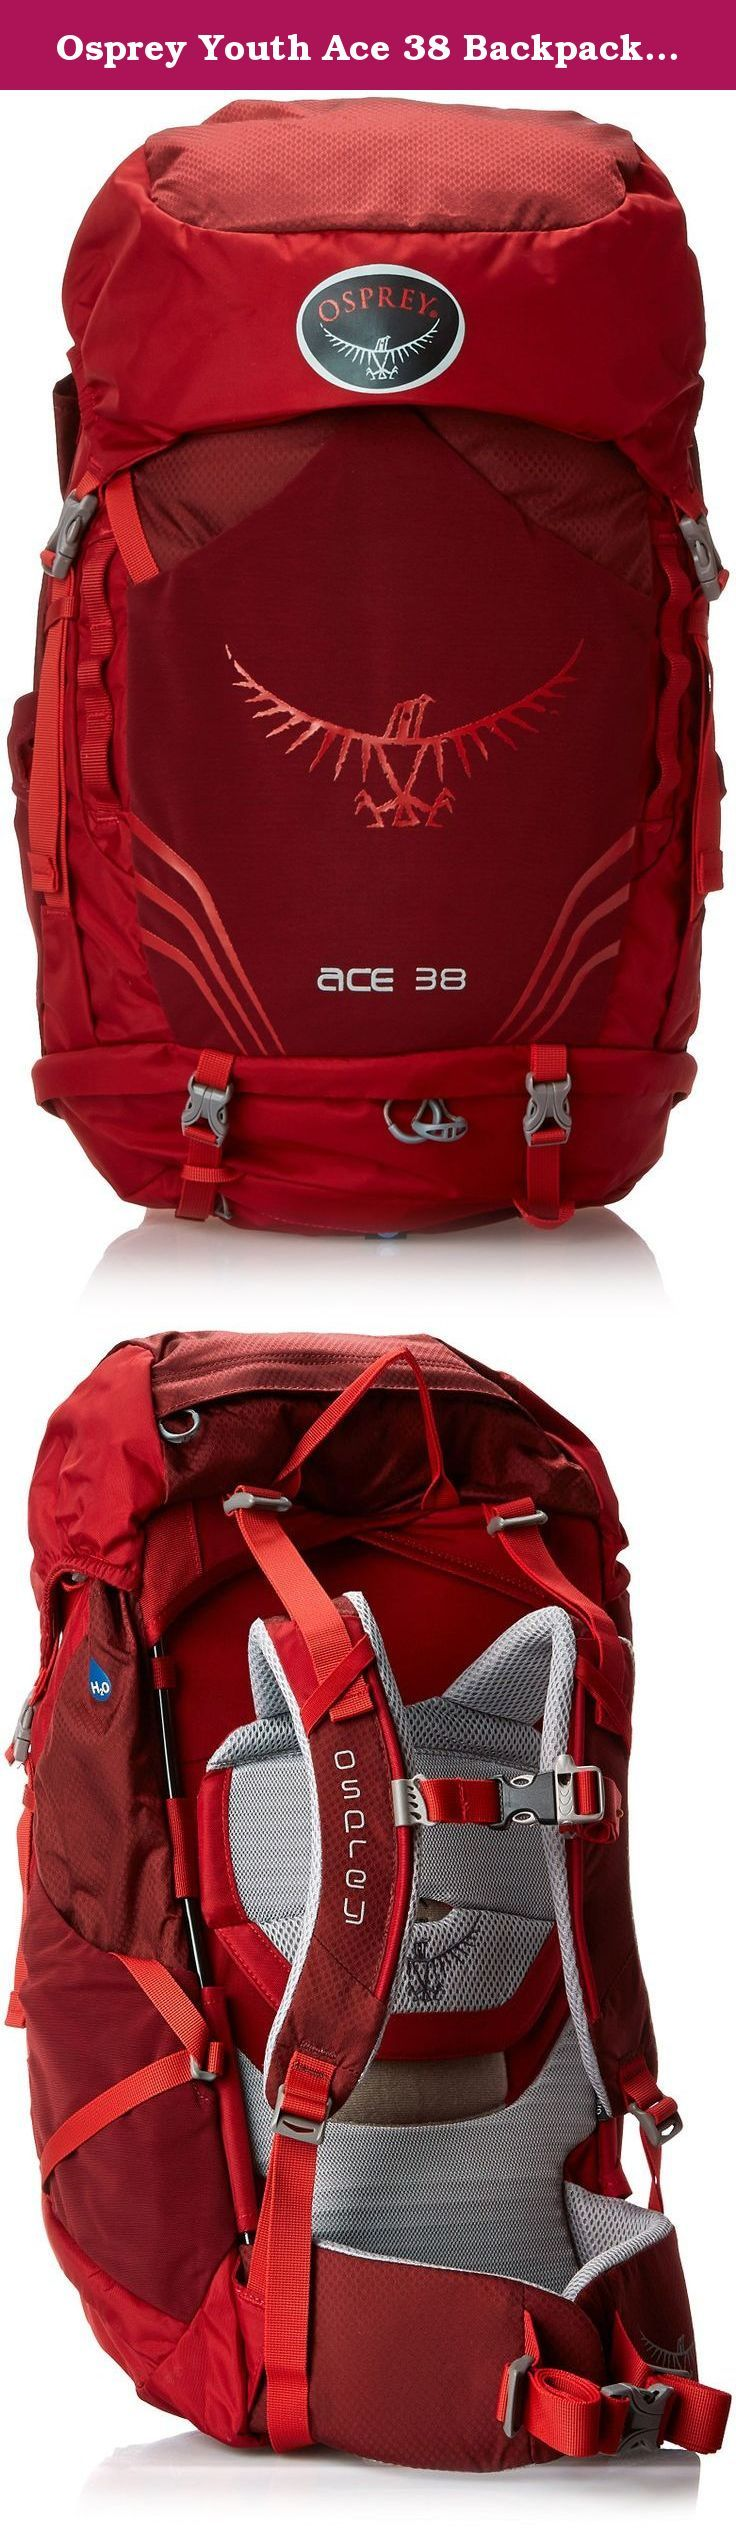 Osprey Youth Ace 38 Backpack, Paprika Red, One Size. The Ace 50 is a technical backpack for young outdoor enthusiasts ages 8-14. The referenced age range is a recommendation only. Height and weight may vary from child to child.